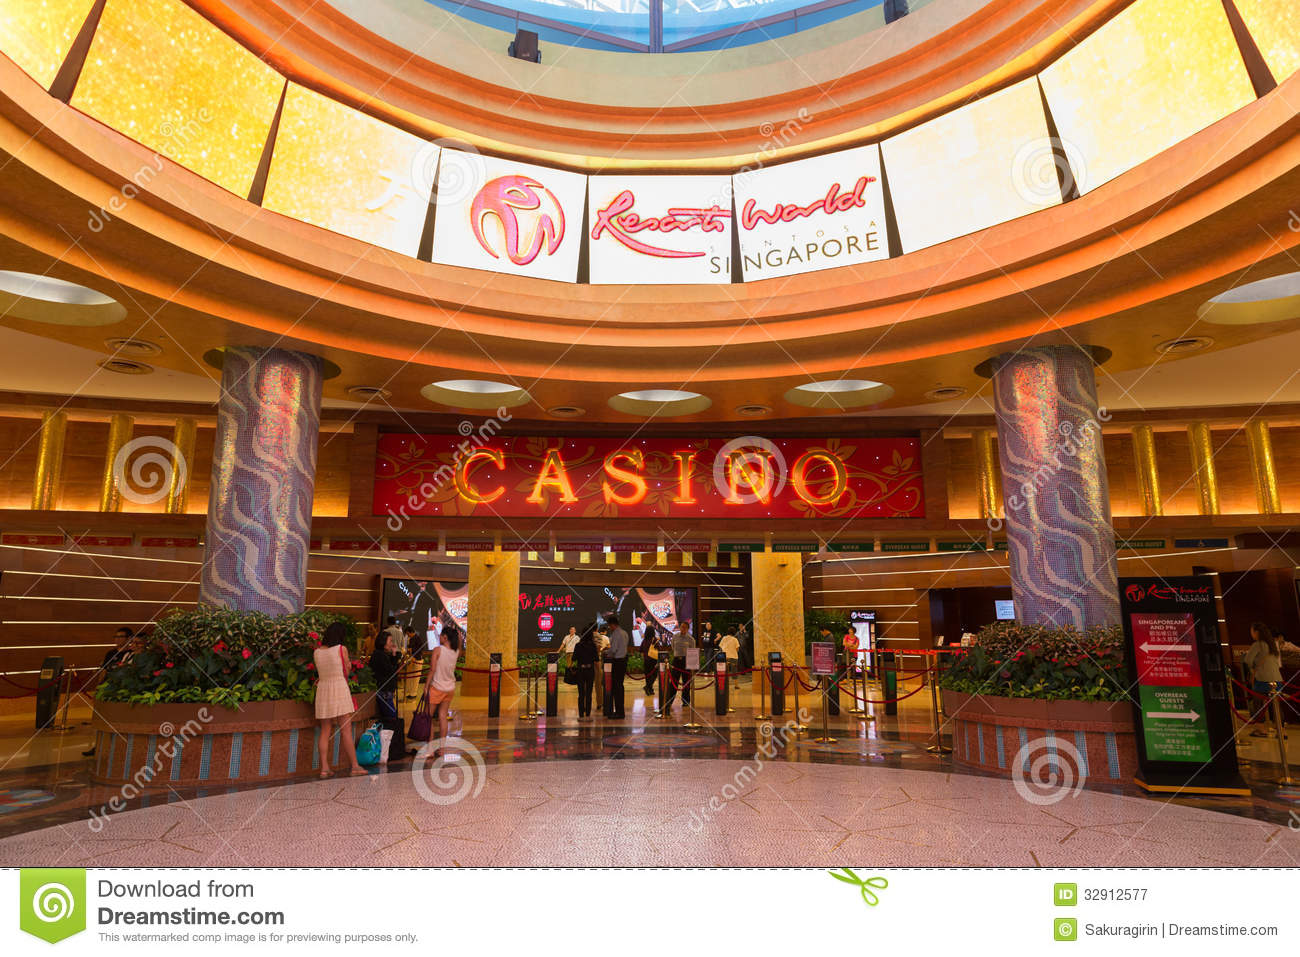 Resort world sentosa casino location